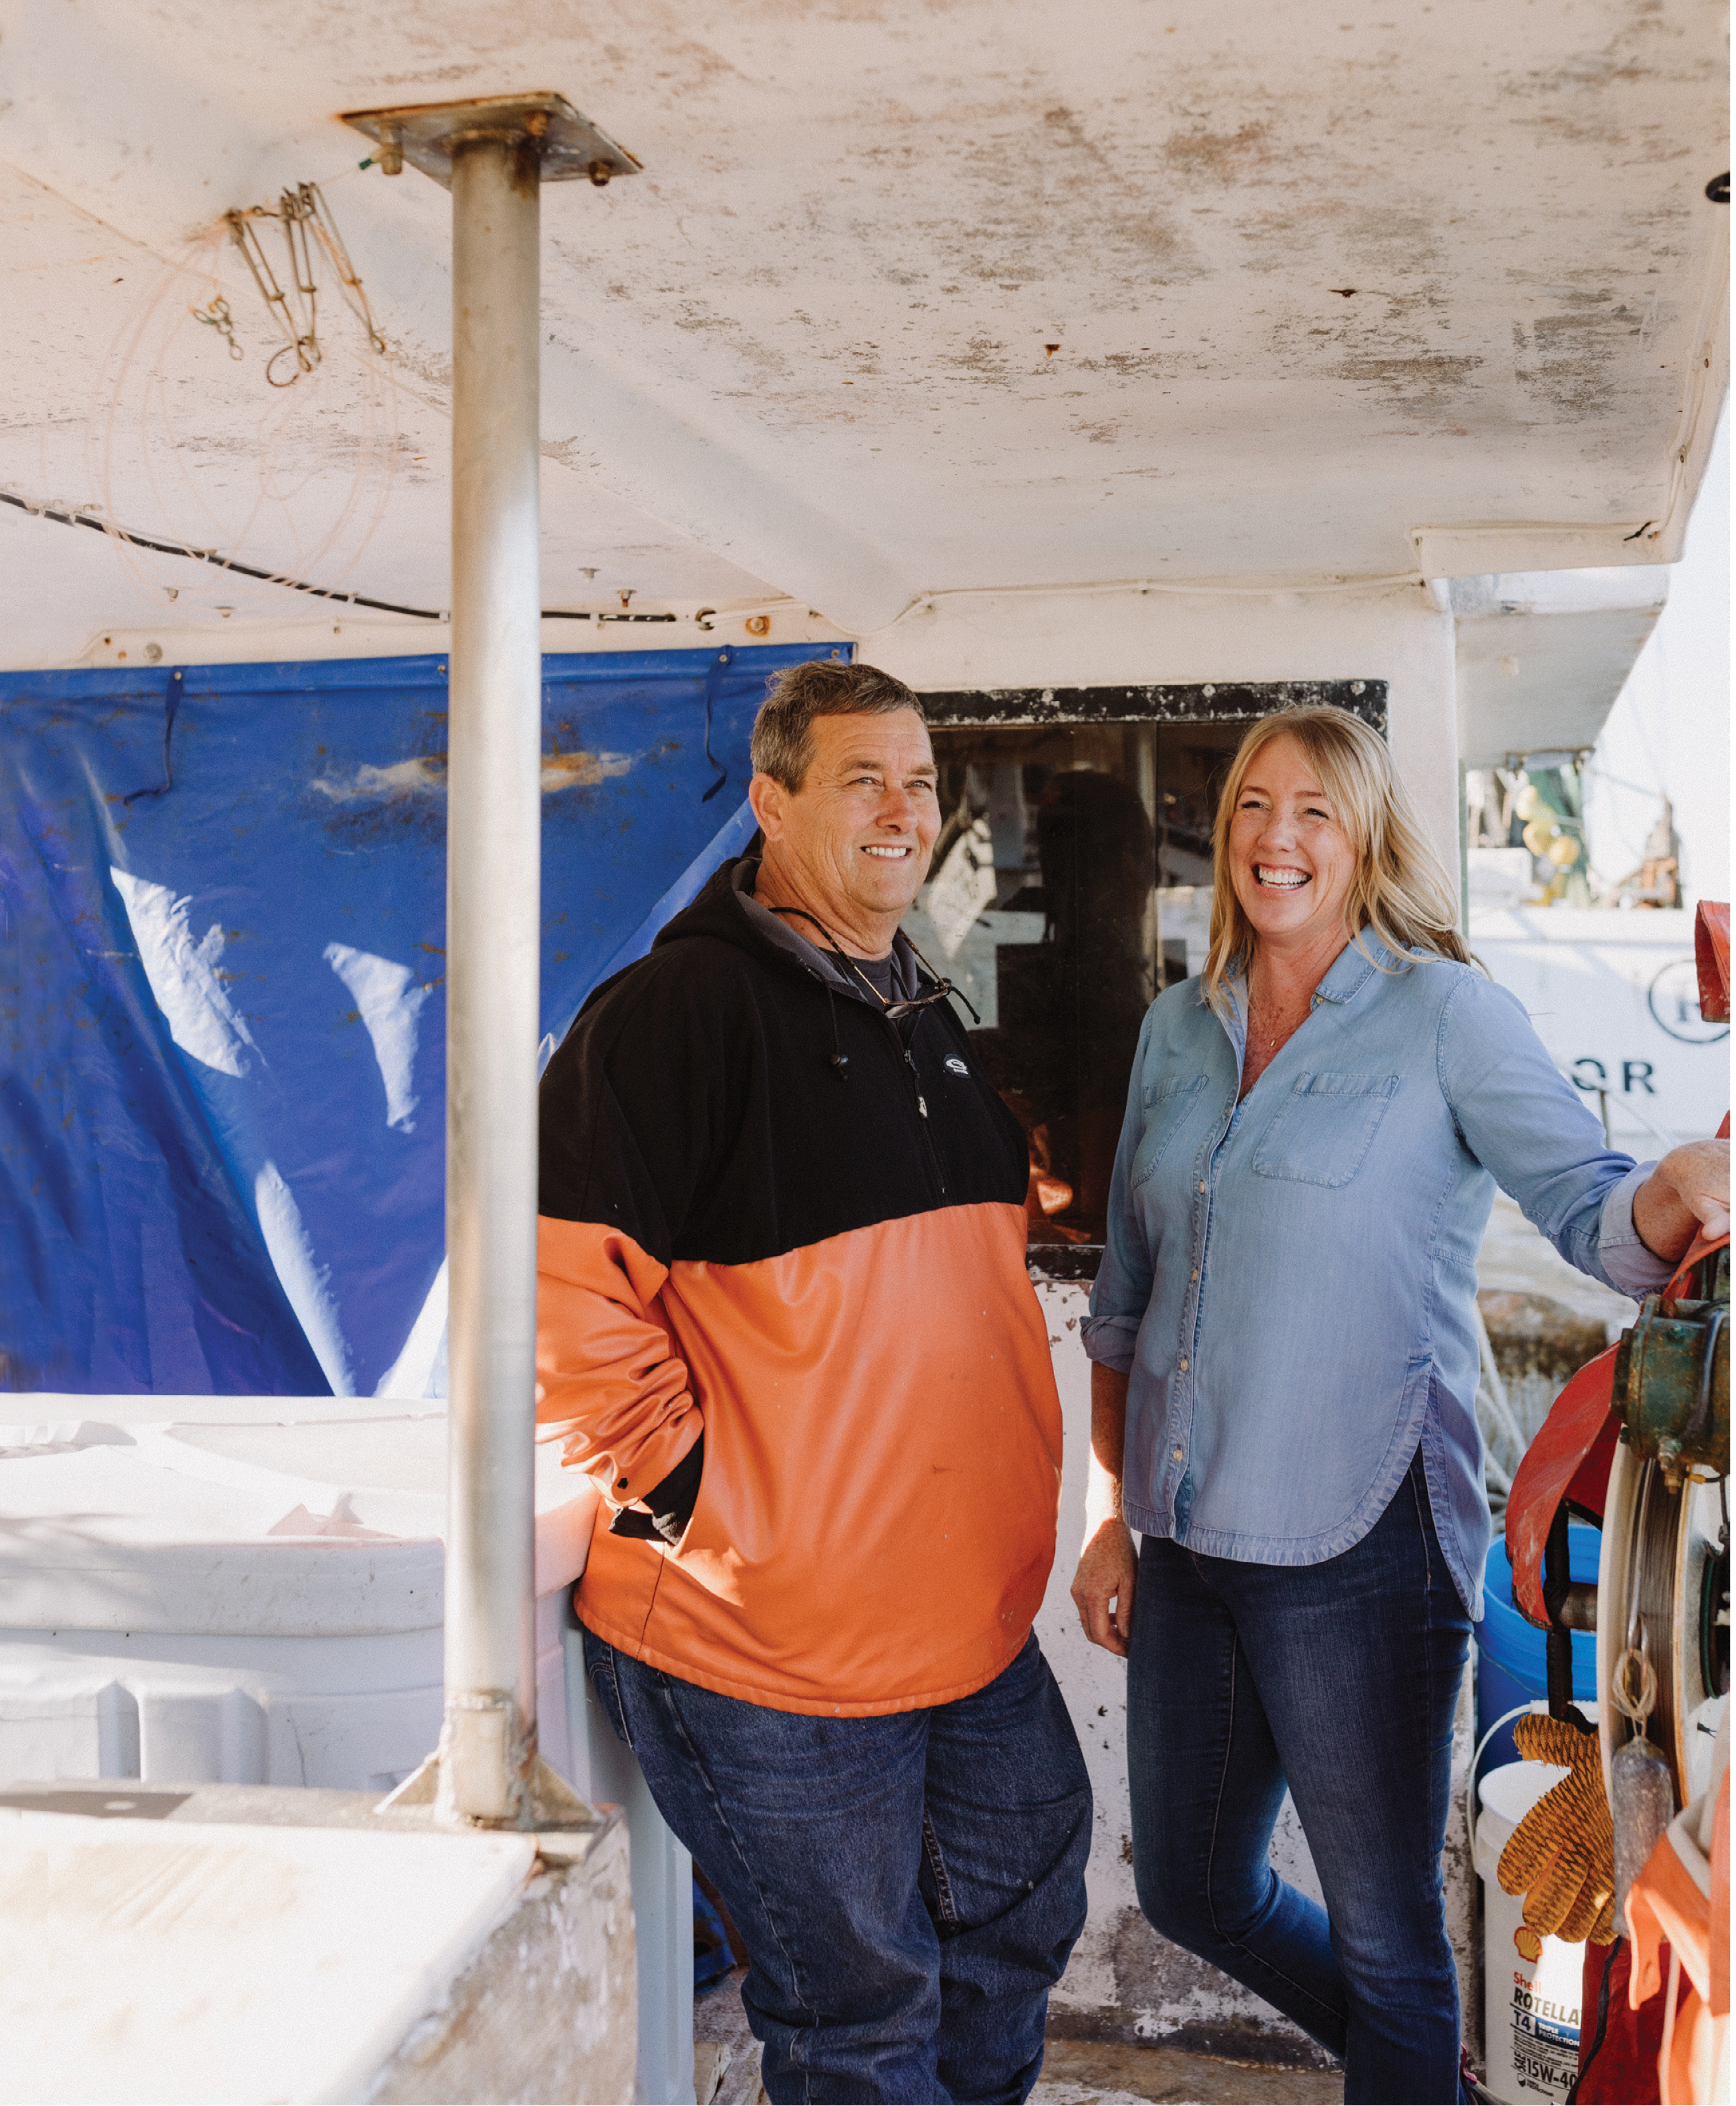 Mark and Kerry at Geechie Dock, where they launched Abundant Seafood's Community Supported Fishery in 2010. Mark was among the first wave of fishermen to create a seafood membership plan that allows individuals to pay for quarterly allotments of fish, available for pickup twice each month.